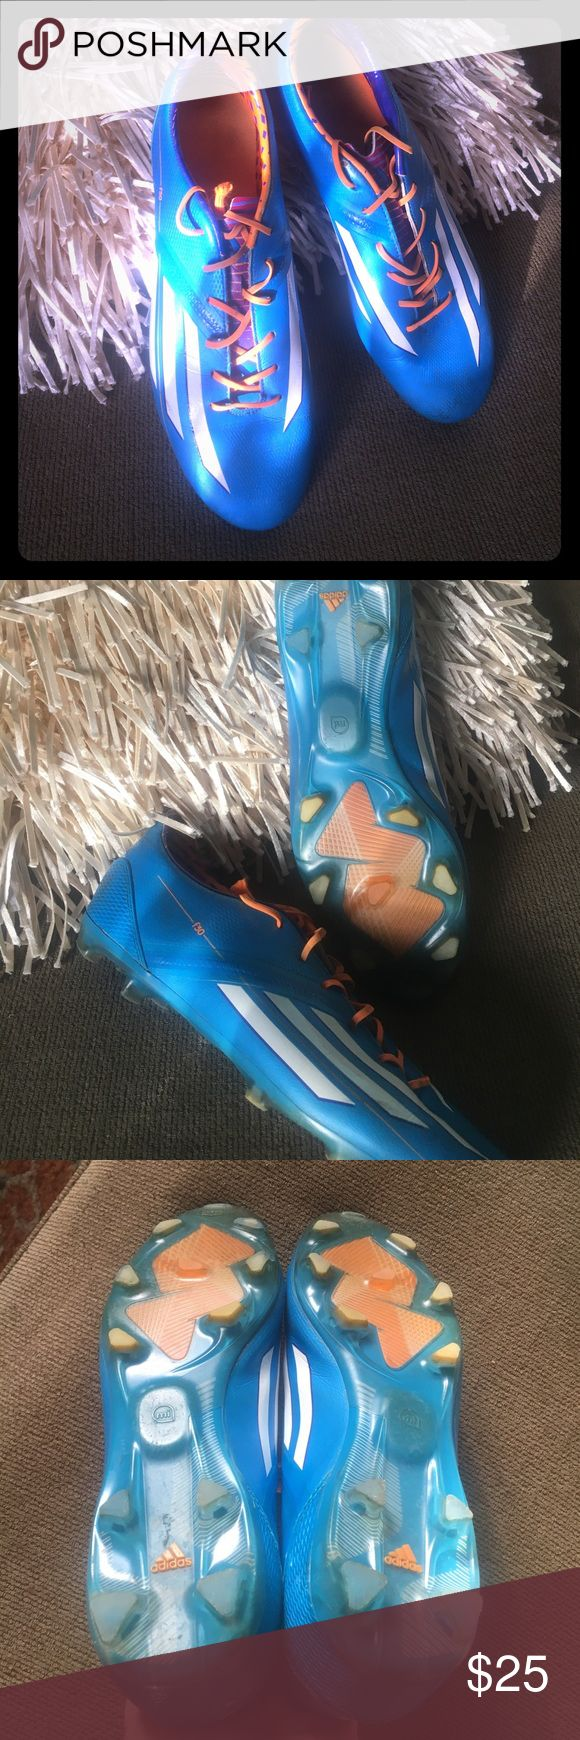 Adidas f30 men's soccer cleats size 11 Bright blue and orange f30 men's soccer cleats. Good condition. adidas Shoes Athletic Shoes